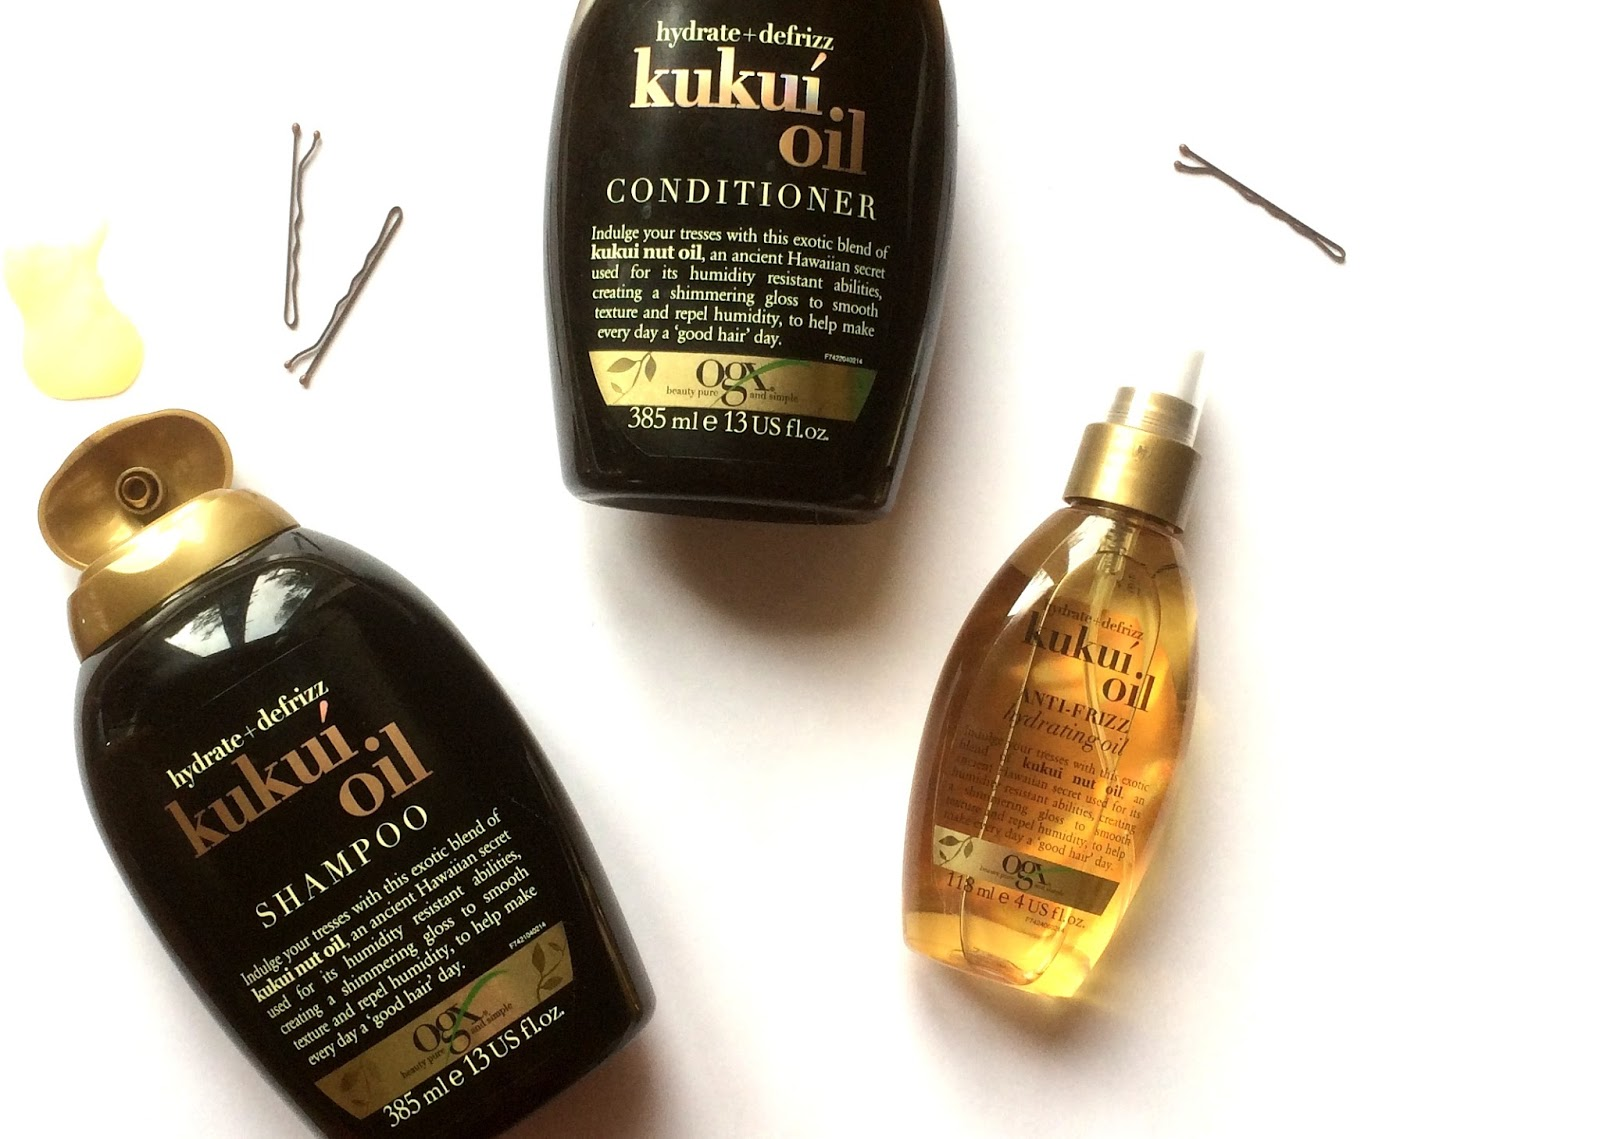 OGX Kukui Oil Range Review